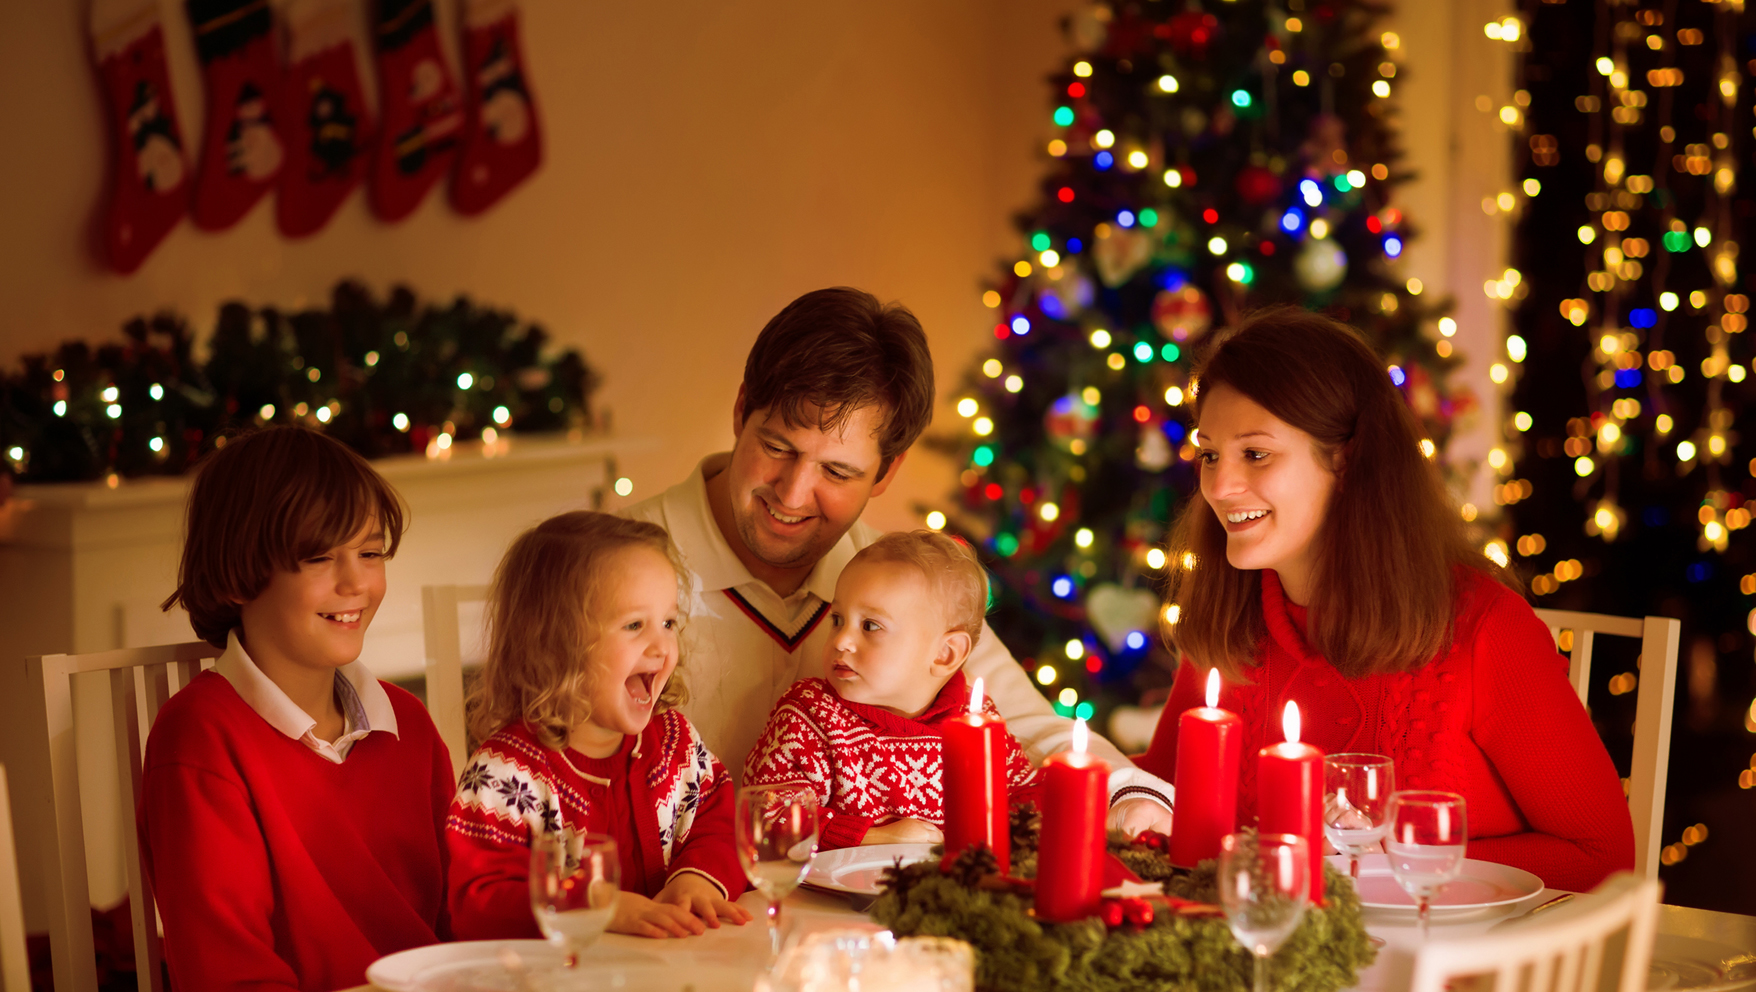 4 Simple Ways to Celebrate Advent with Your Kids